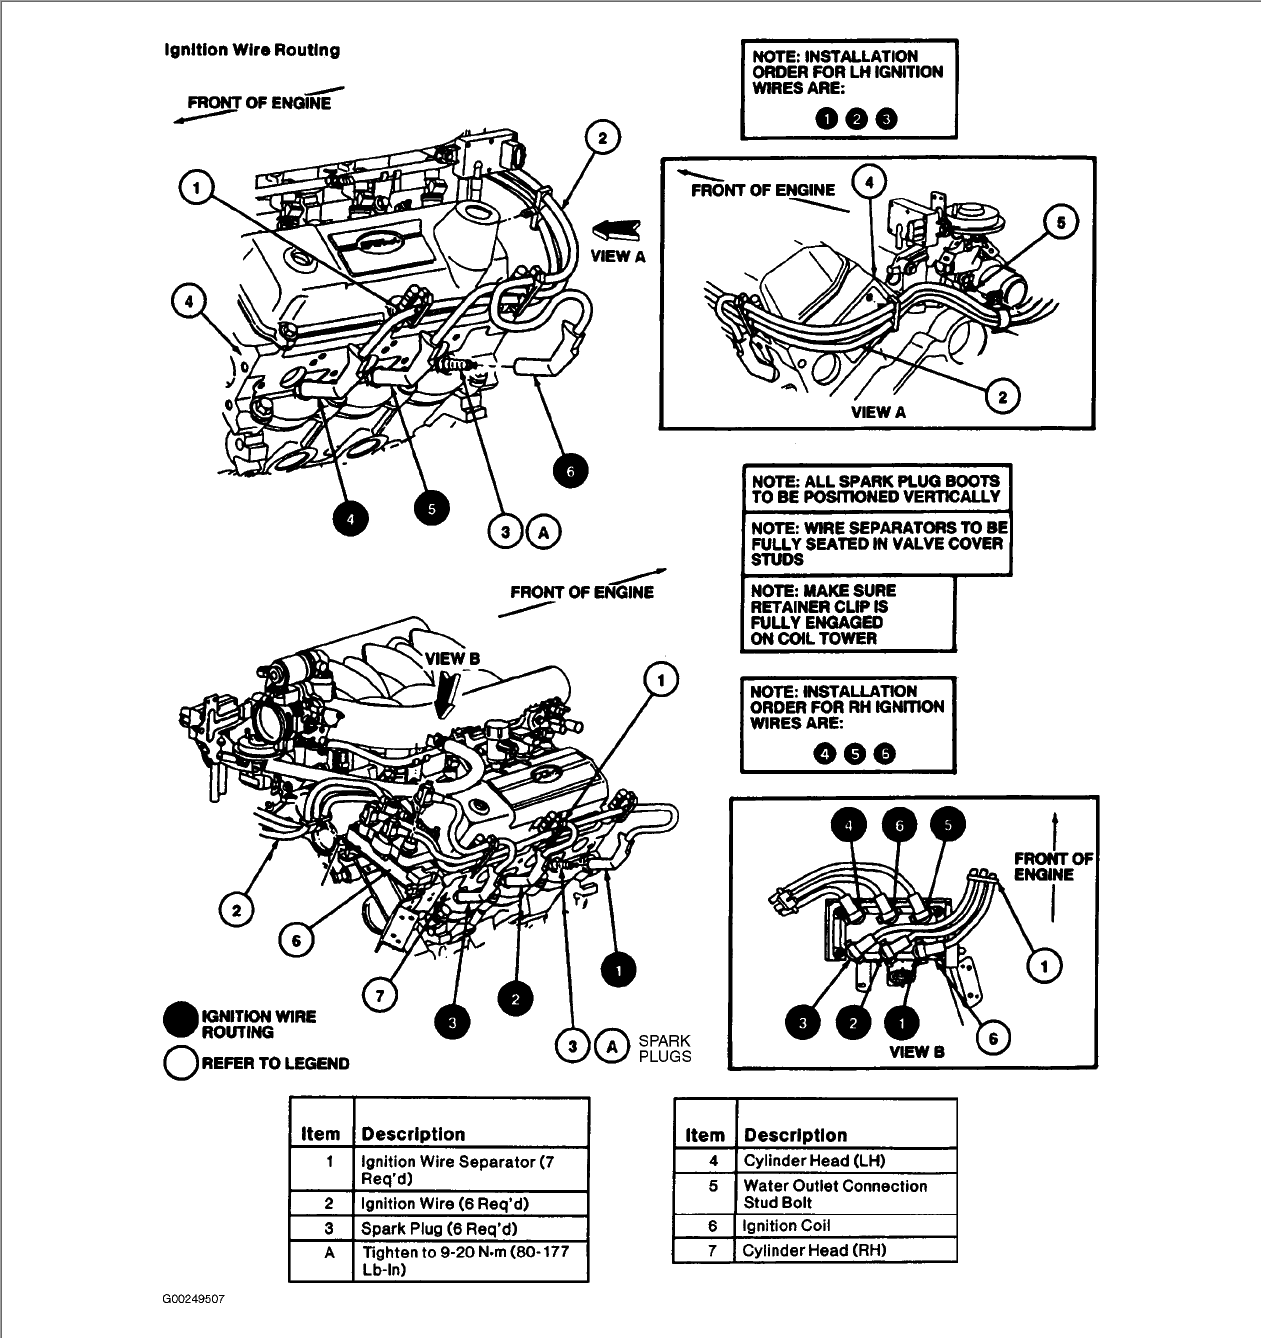 i need the firing order on coil for 1996 ford winstar 3 8 v 6 coil for 1996 ford winstar 3 8 v